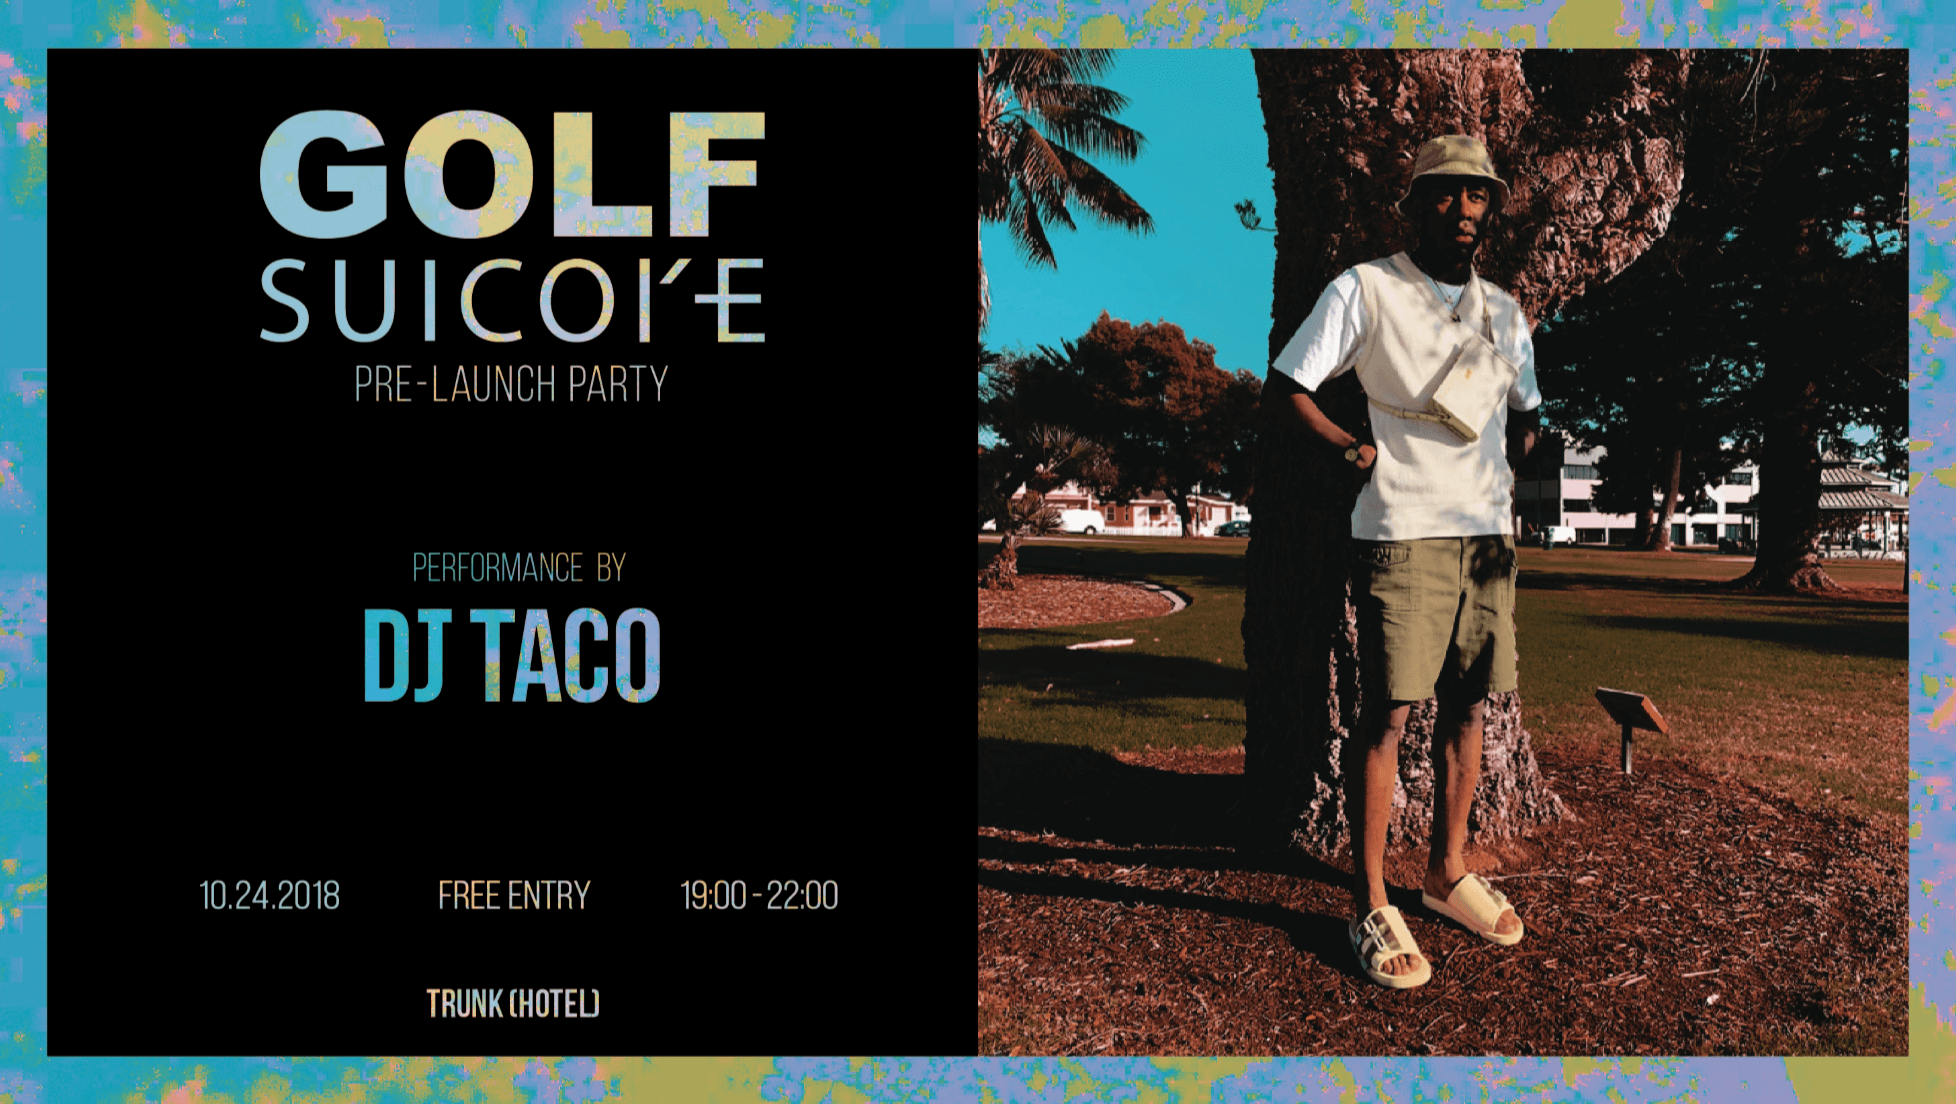 GOLF x SUICOKE Pre-Launch Event